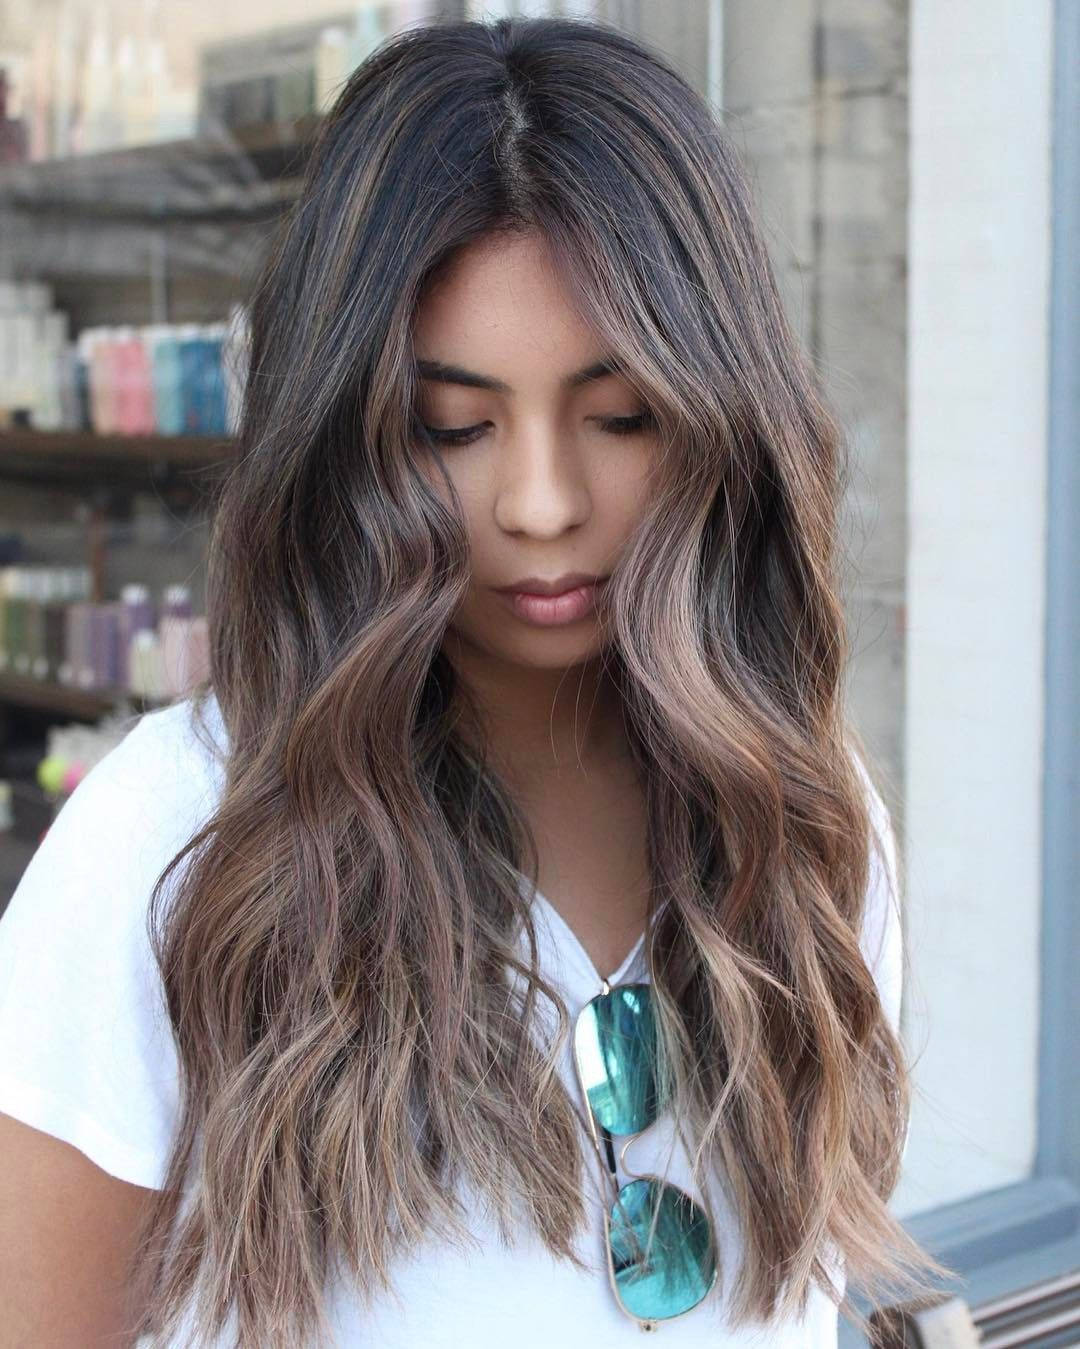 What Are The Best Hair Colors For Tan Skin Hair Adviser In 2020 Hair Color For Tan Skin Skin Tone Hair Color Brown Hair Olive Skin